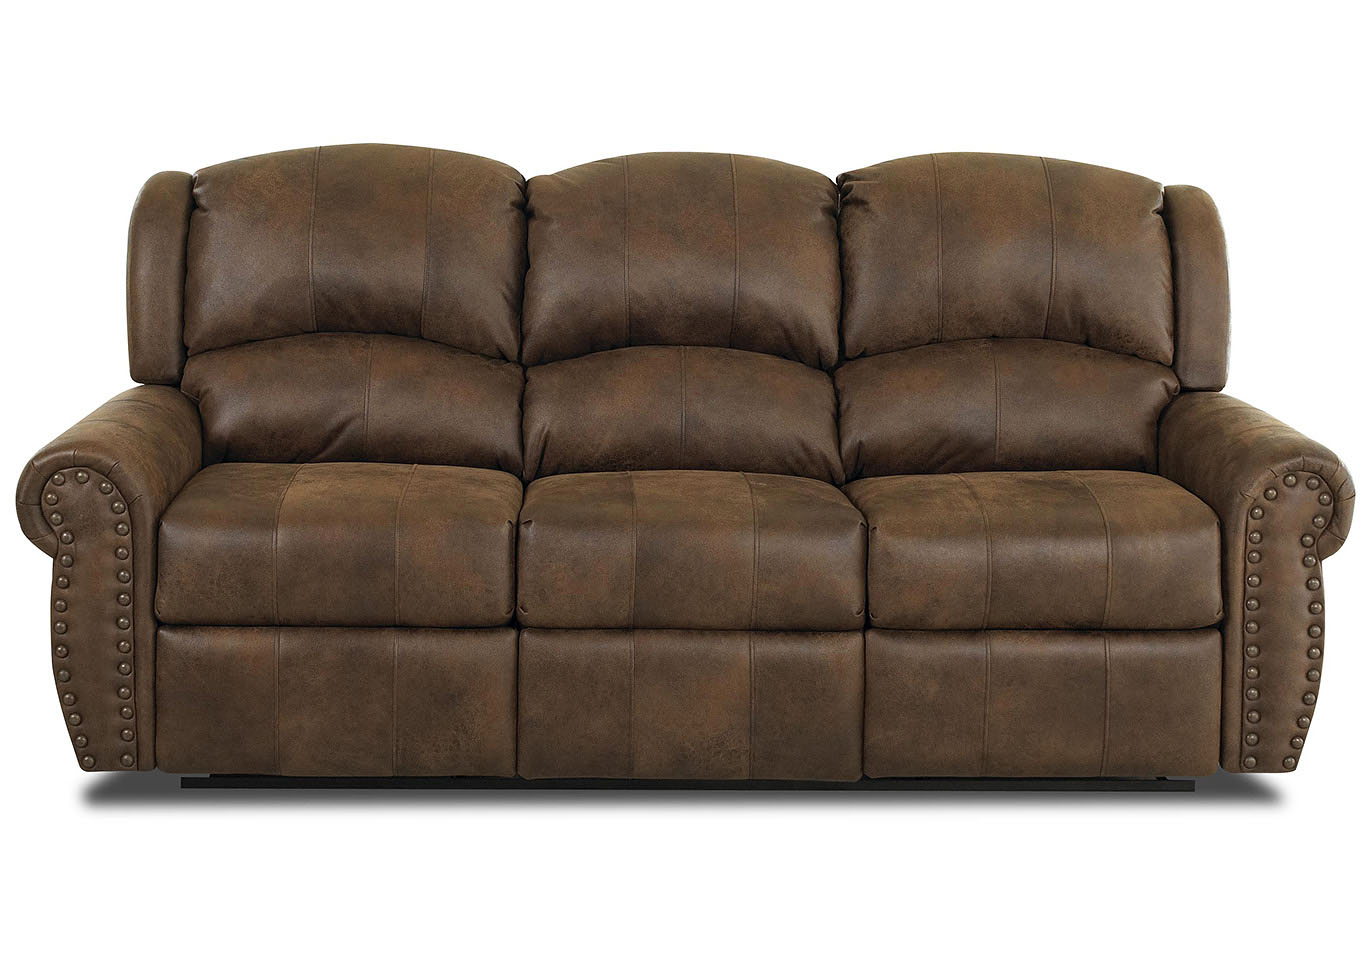 - Mcalister Rust Brown Reclining Fabric & Leather Sofa Best Buy